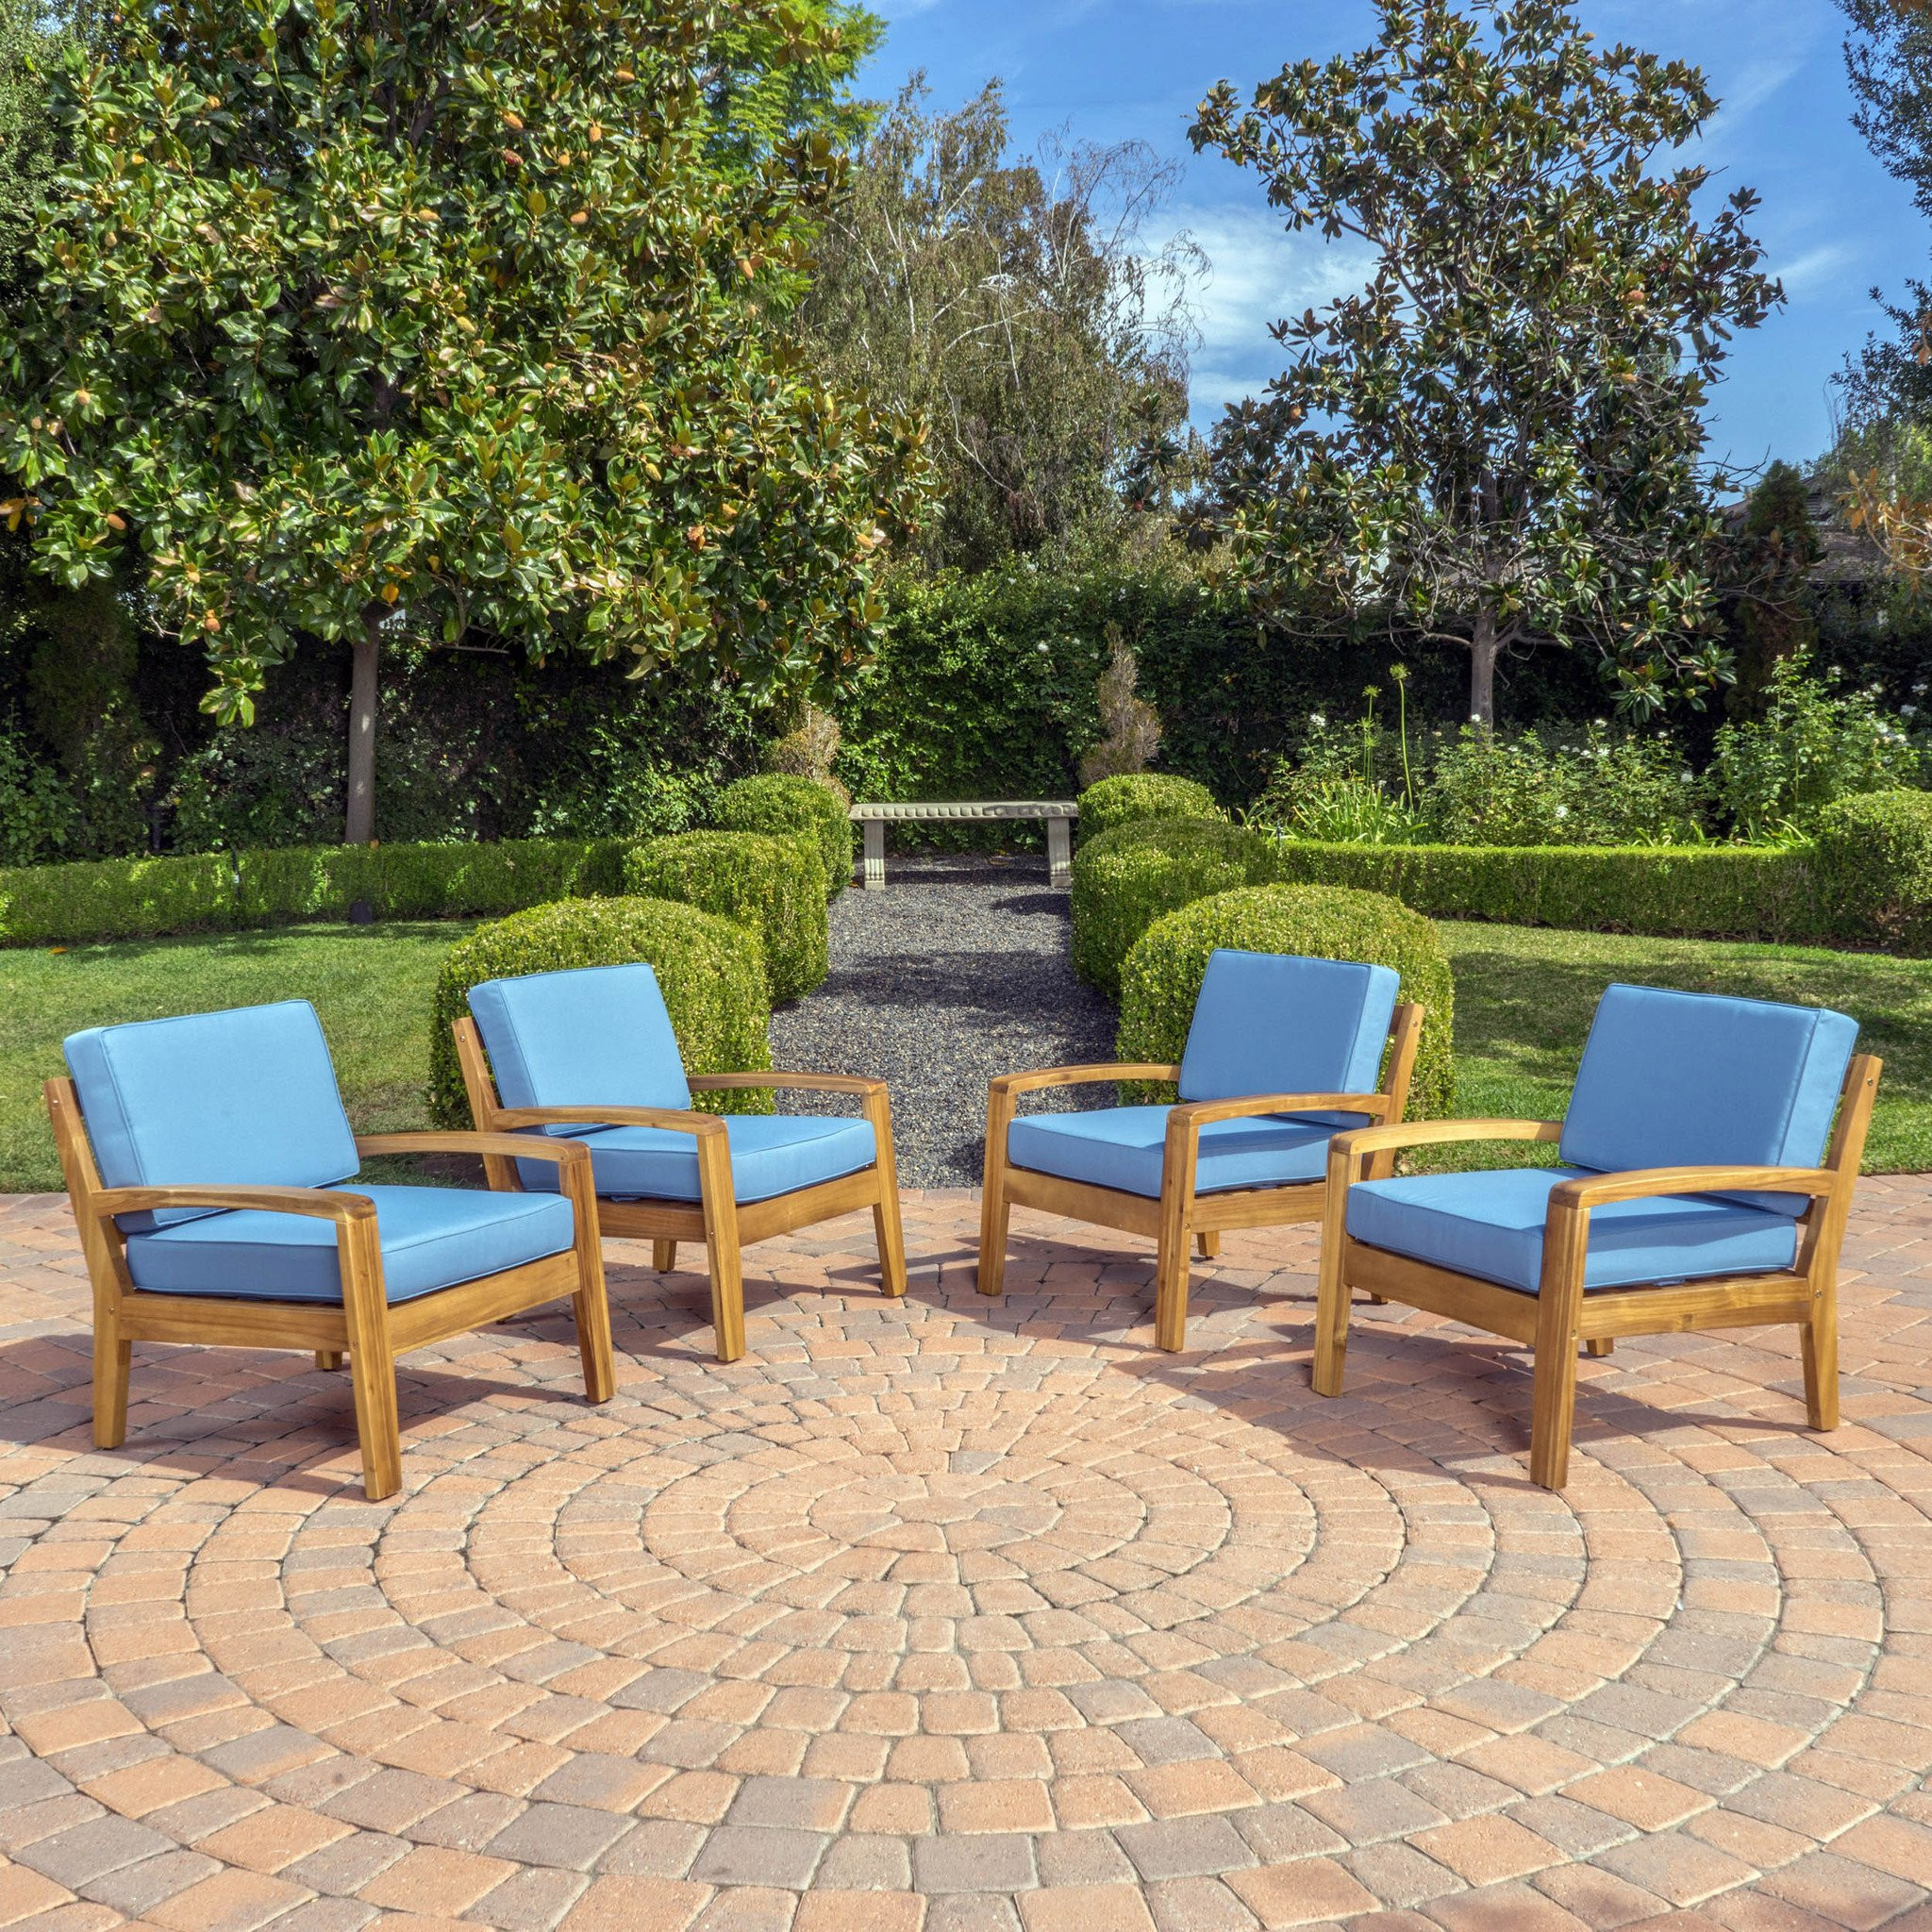 Parma Outdoor Wood Patio Furniture Club Chairs w/...